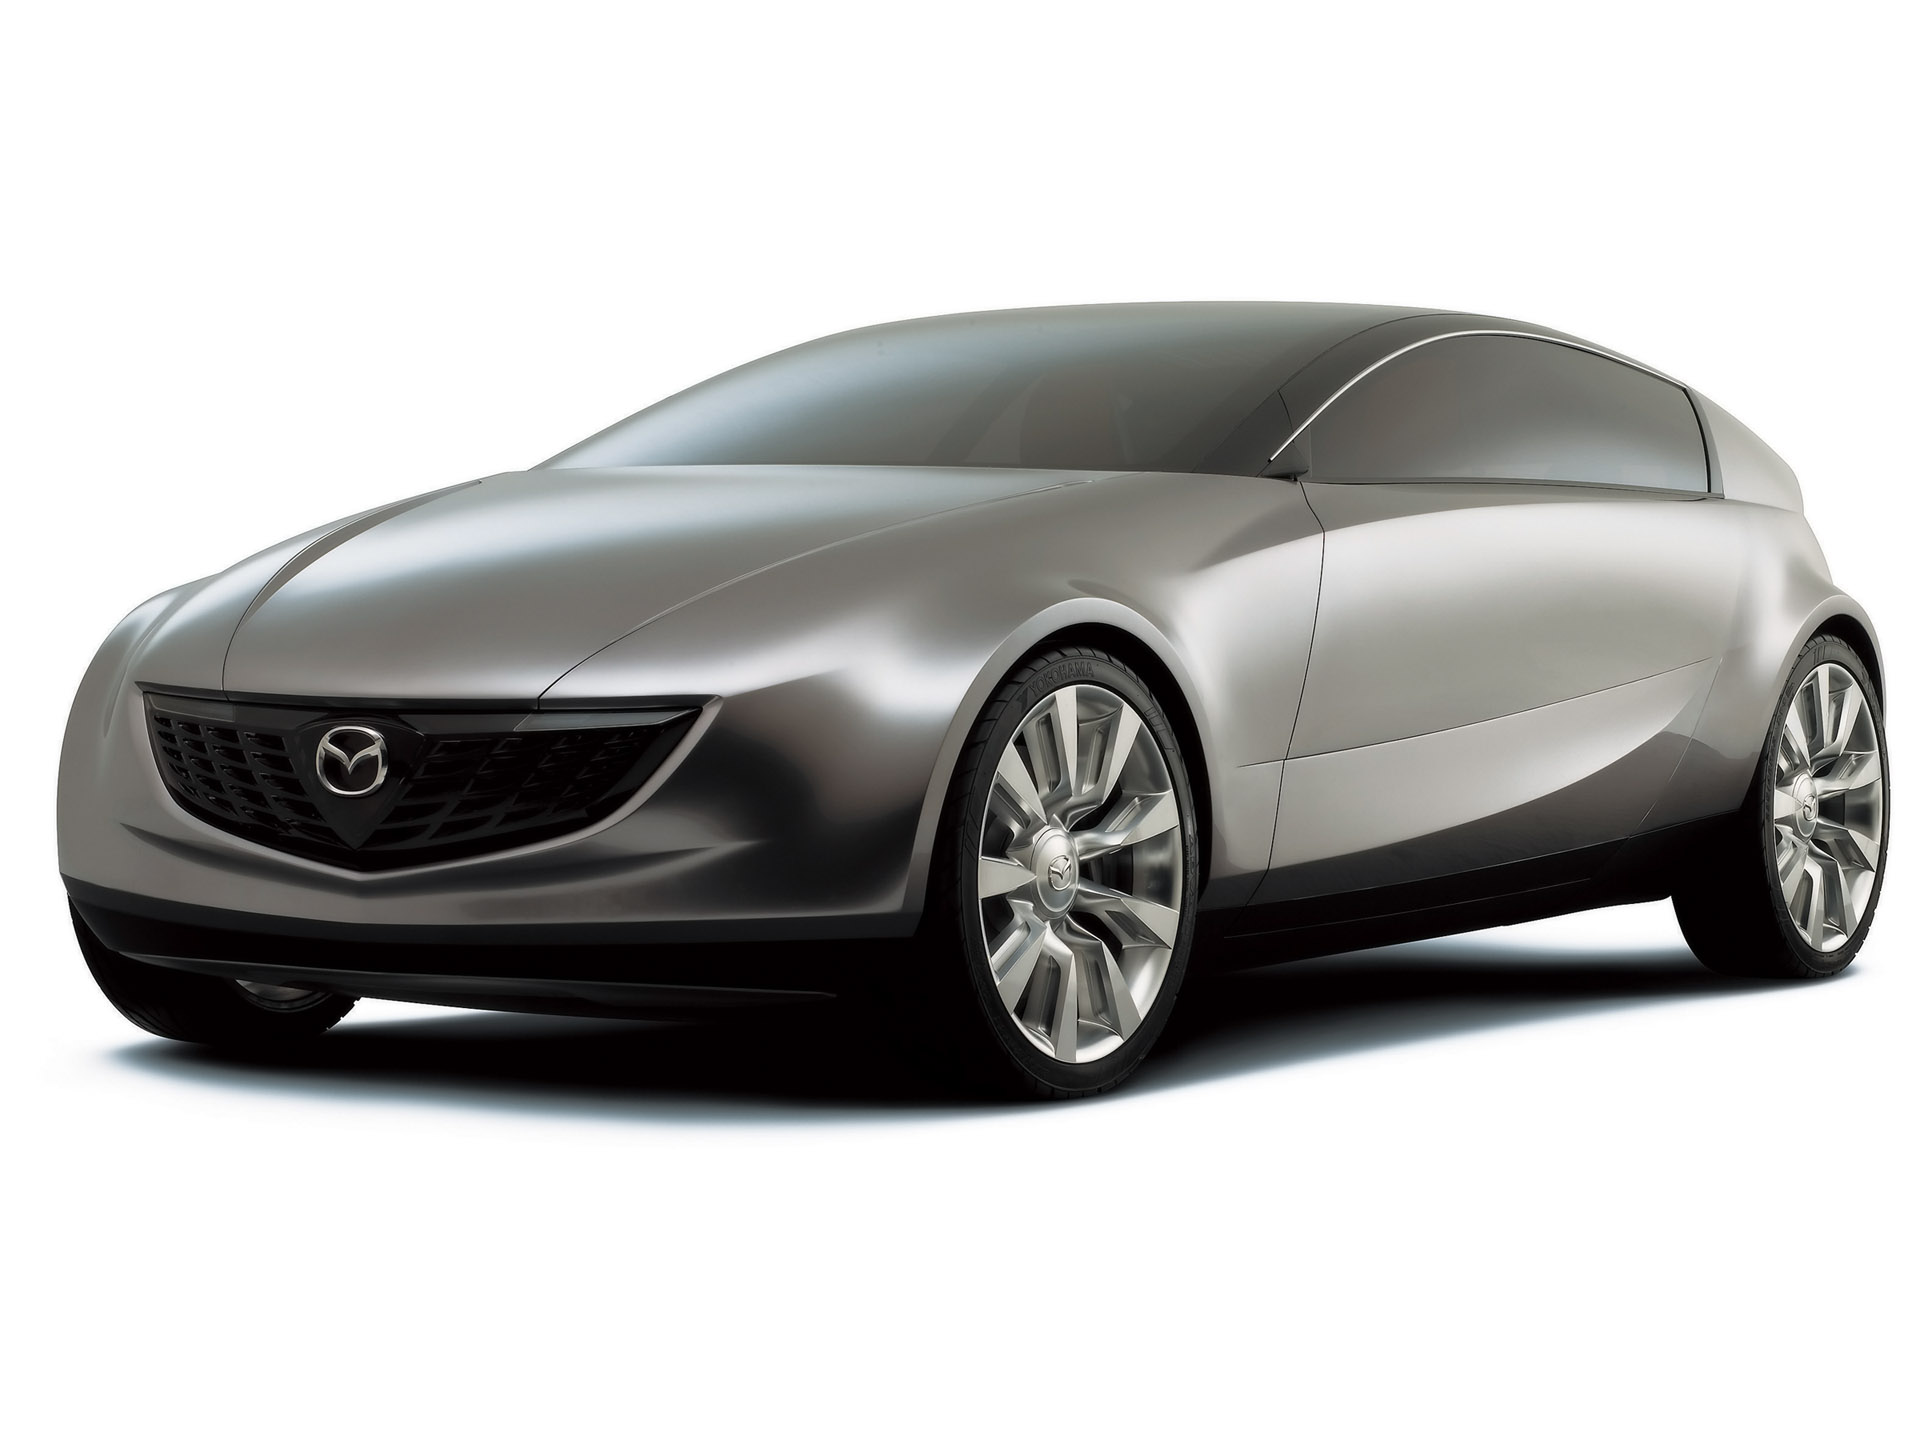 Mazda Senku concept photos High Resolution Wallpaper Free